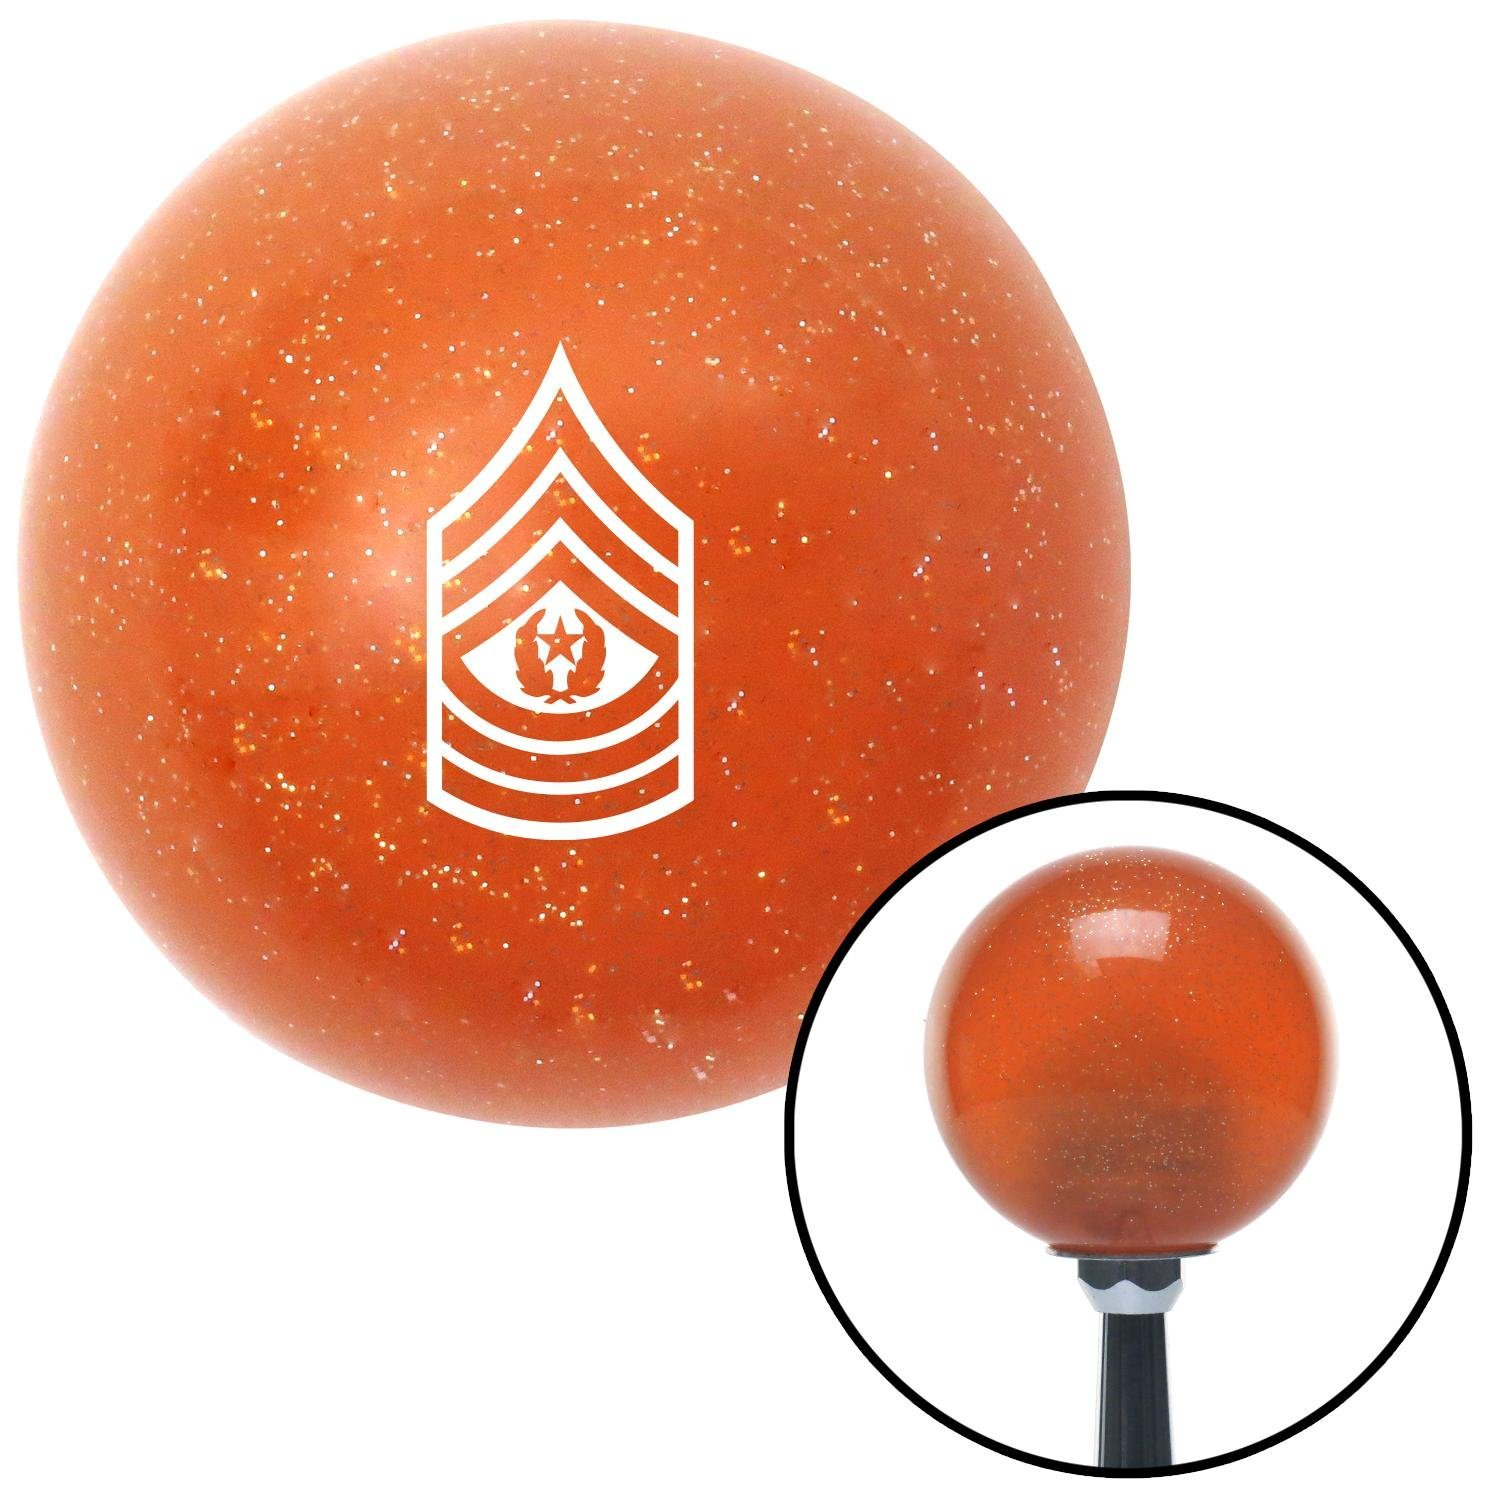 White Command Sergeant Major American Shifter 44370 Orange Metal Flake Shift Knob with 16mm x 1.5 Insert